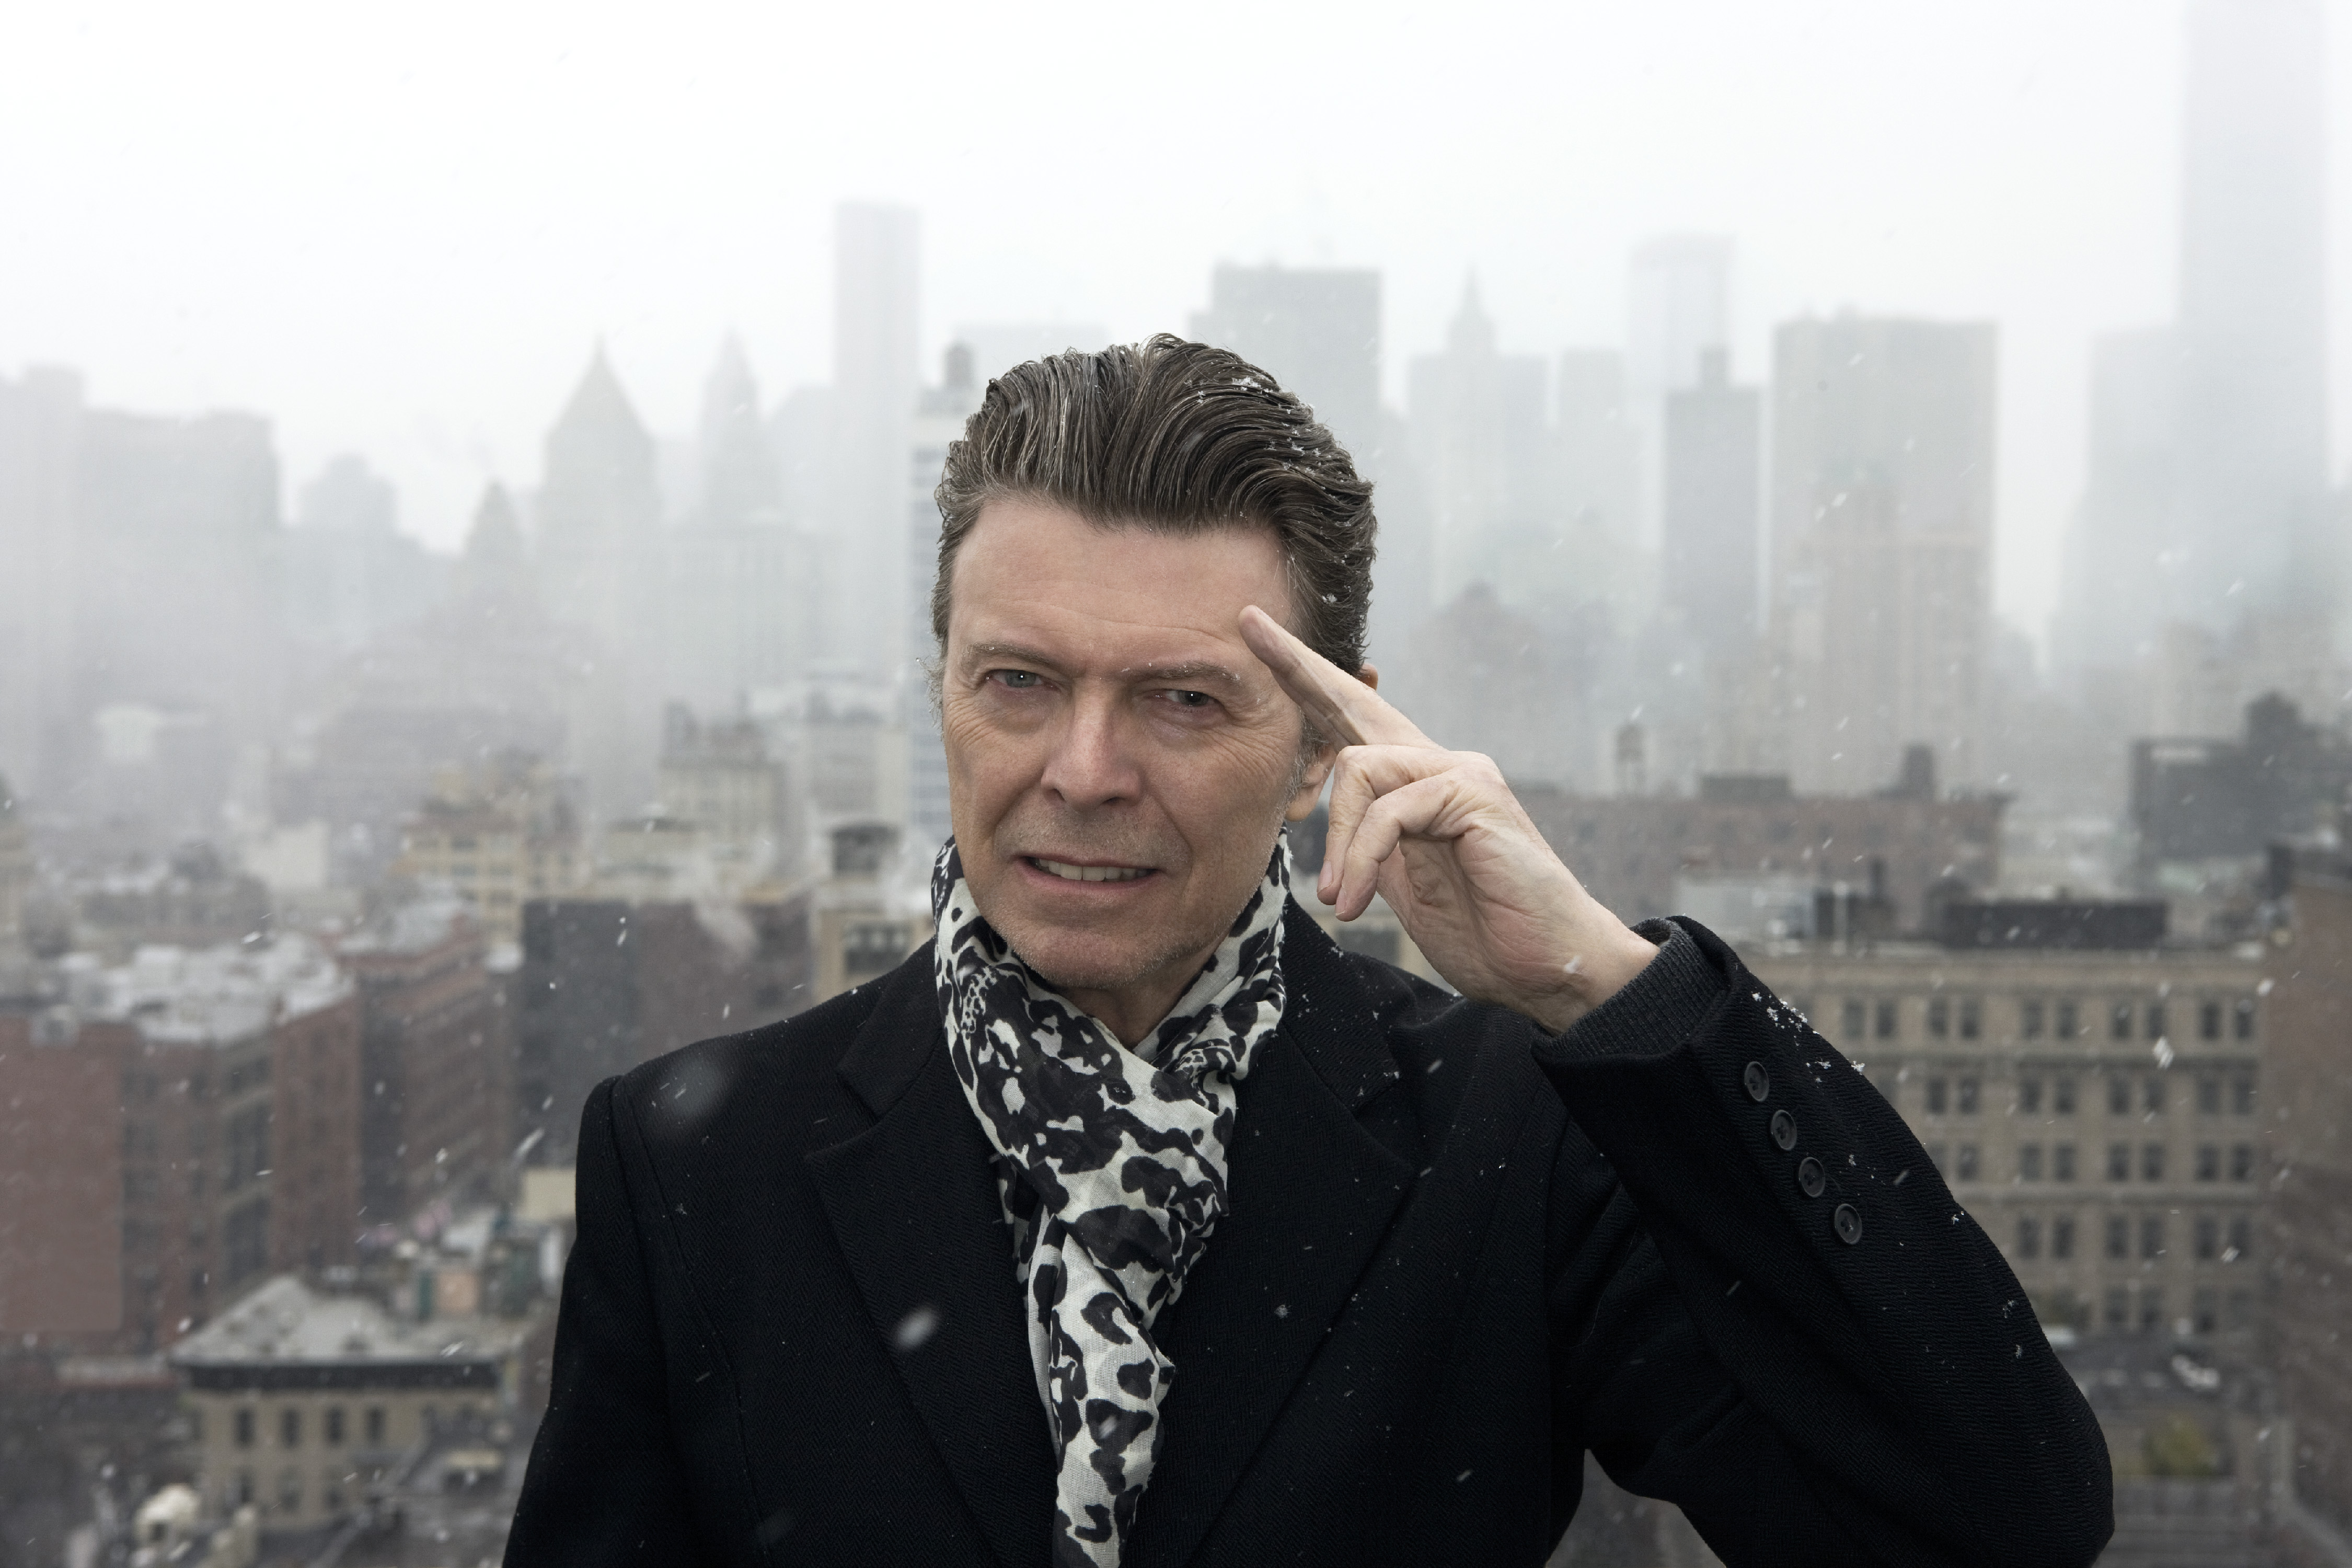 David Bowie on roof